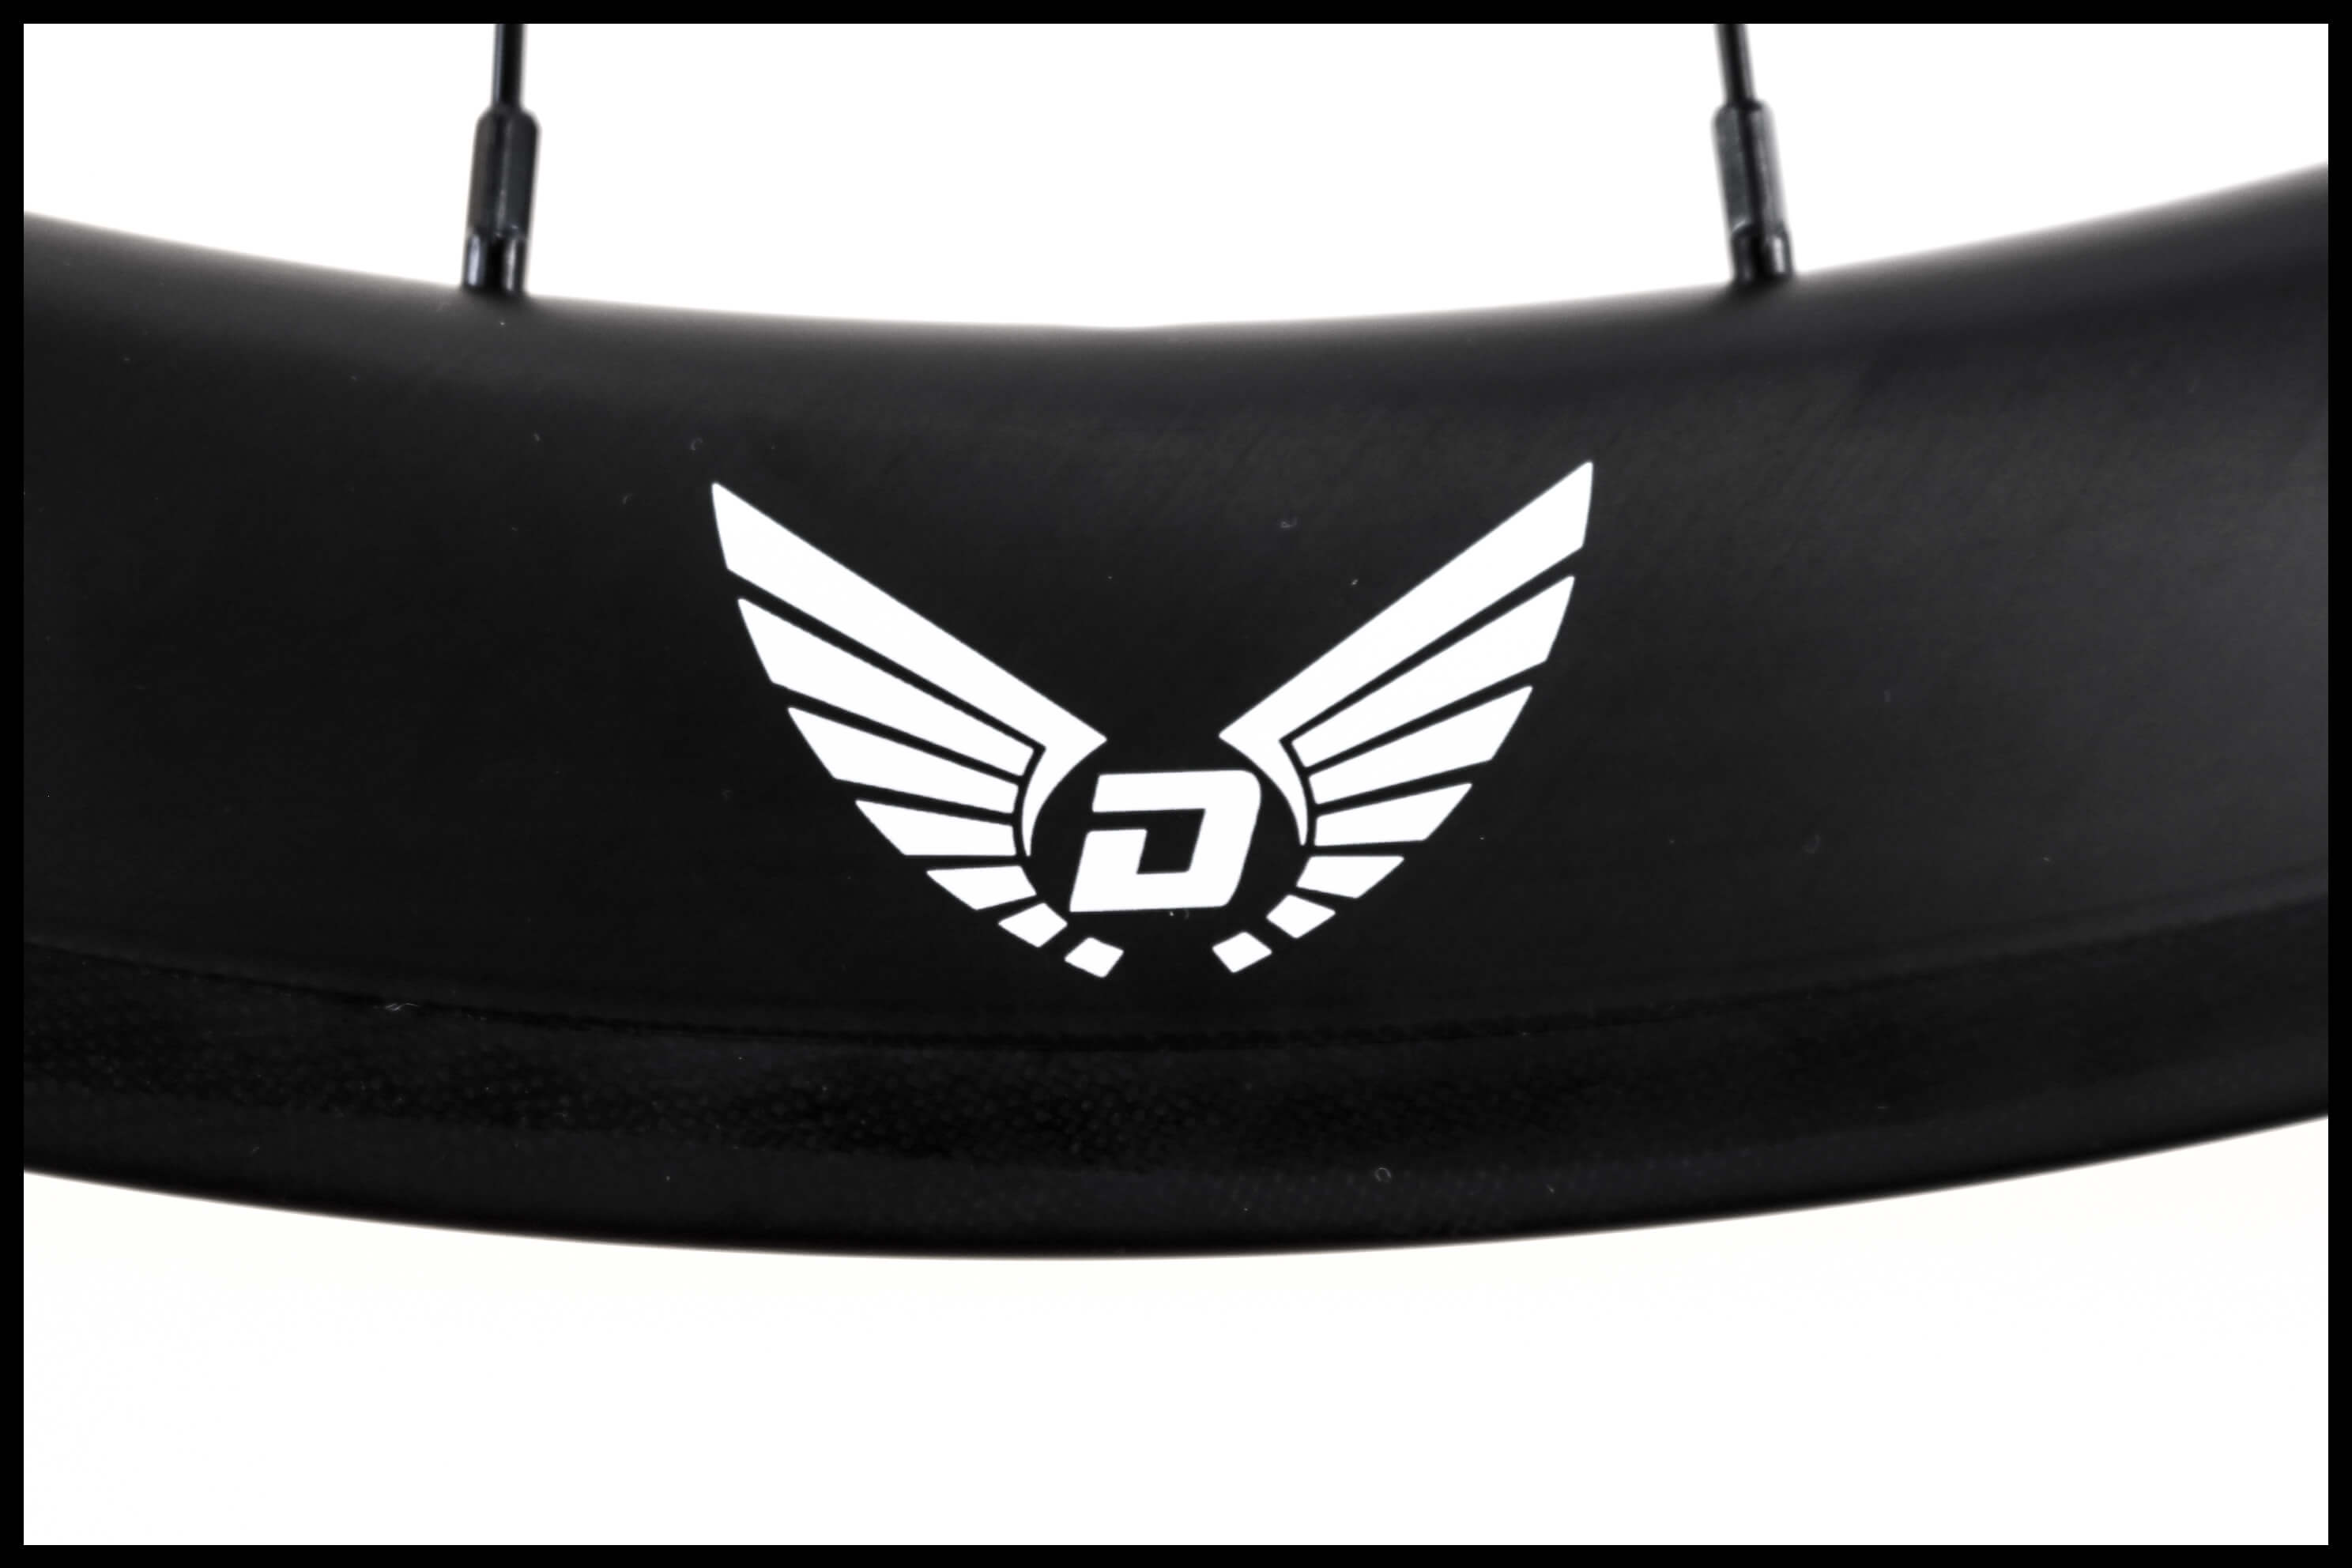 Divine Logo Road Bike Rim Close-up | Divine Cycling